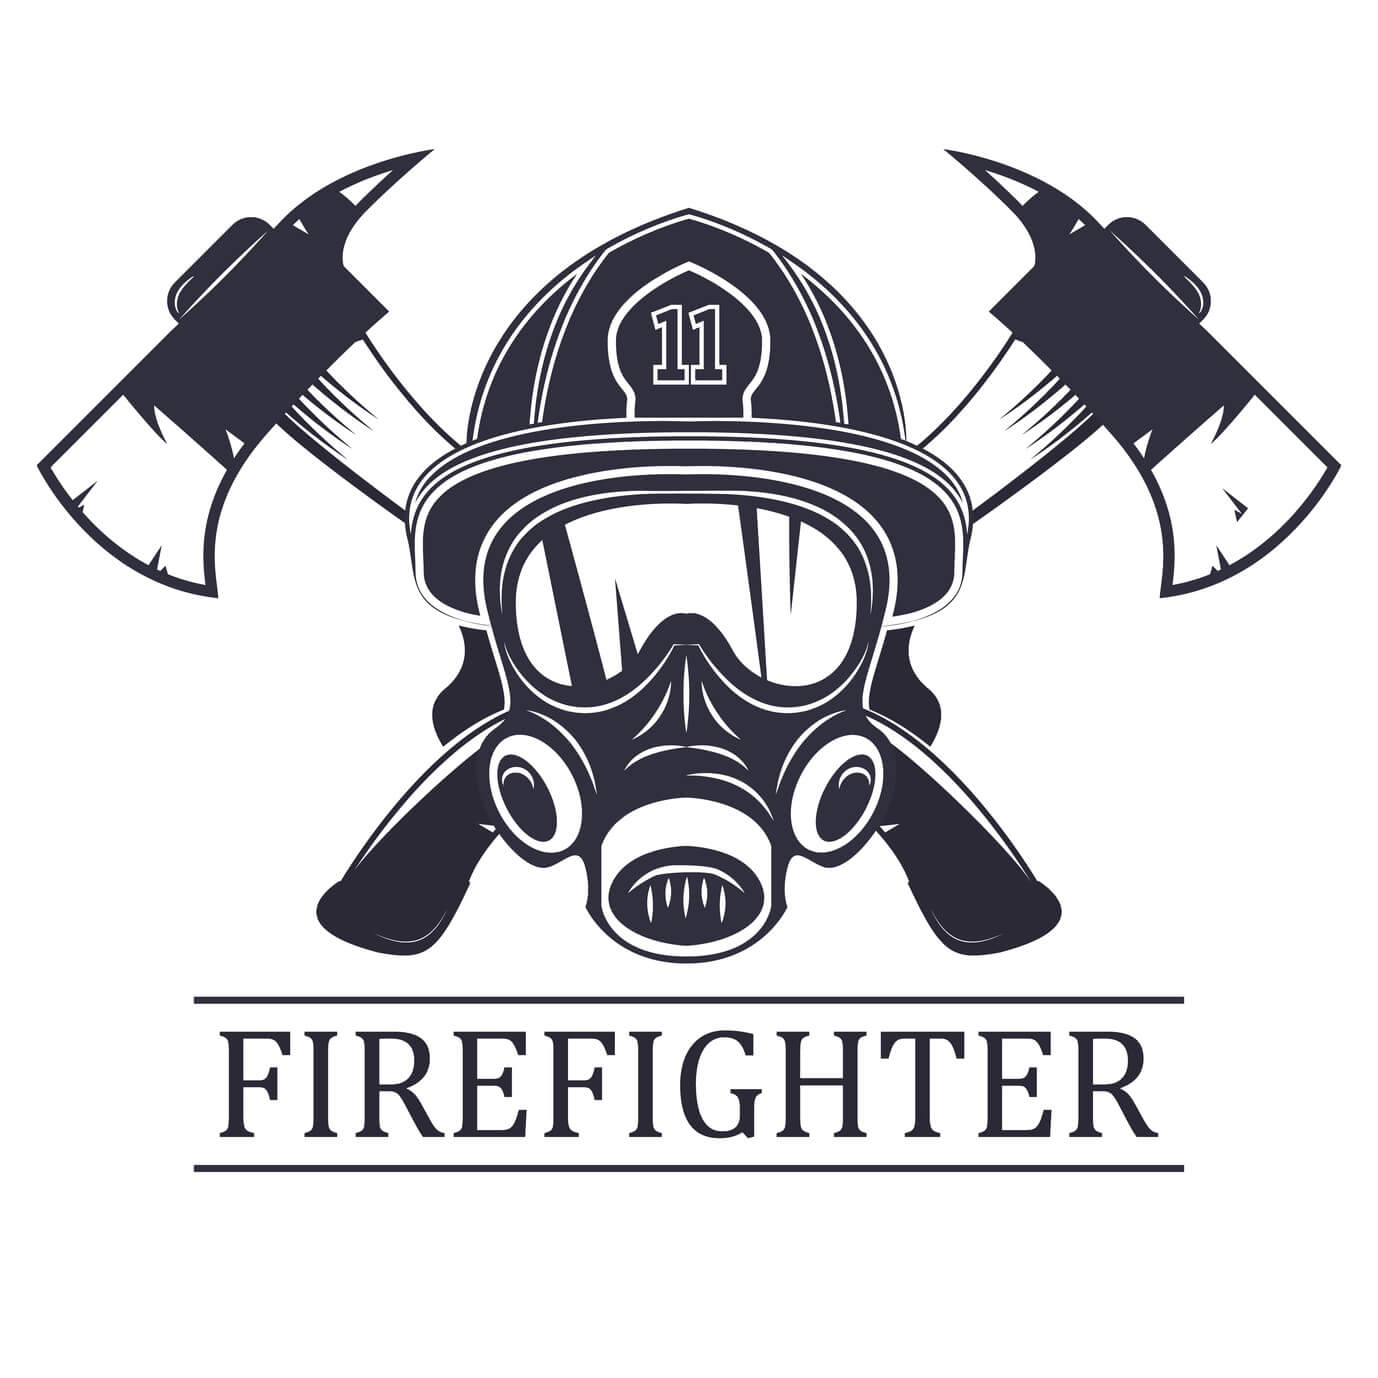 Black and white firefighter mask with axes in background. Firefighters logo.